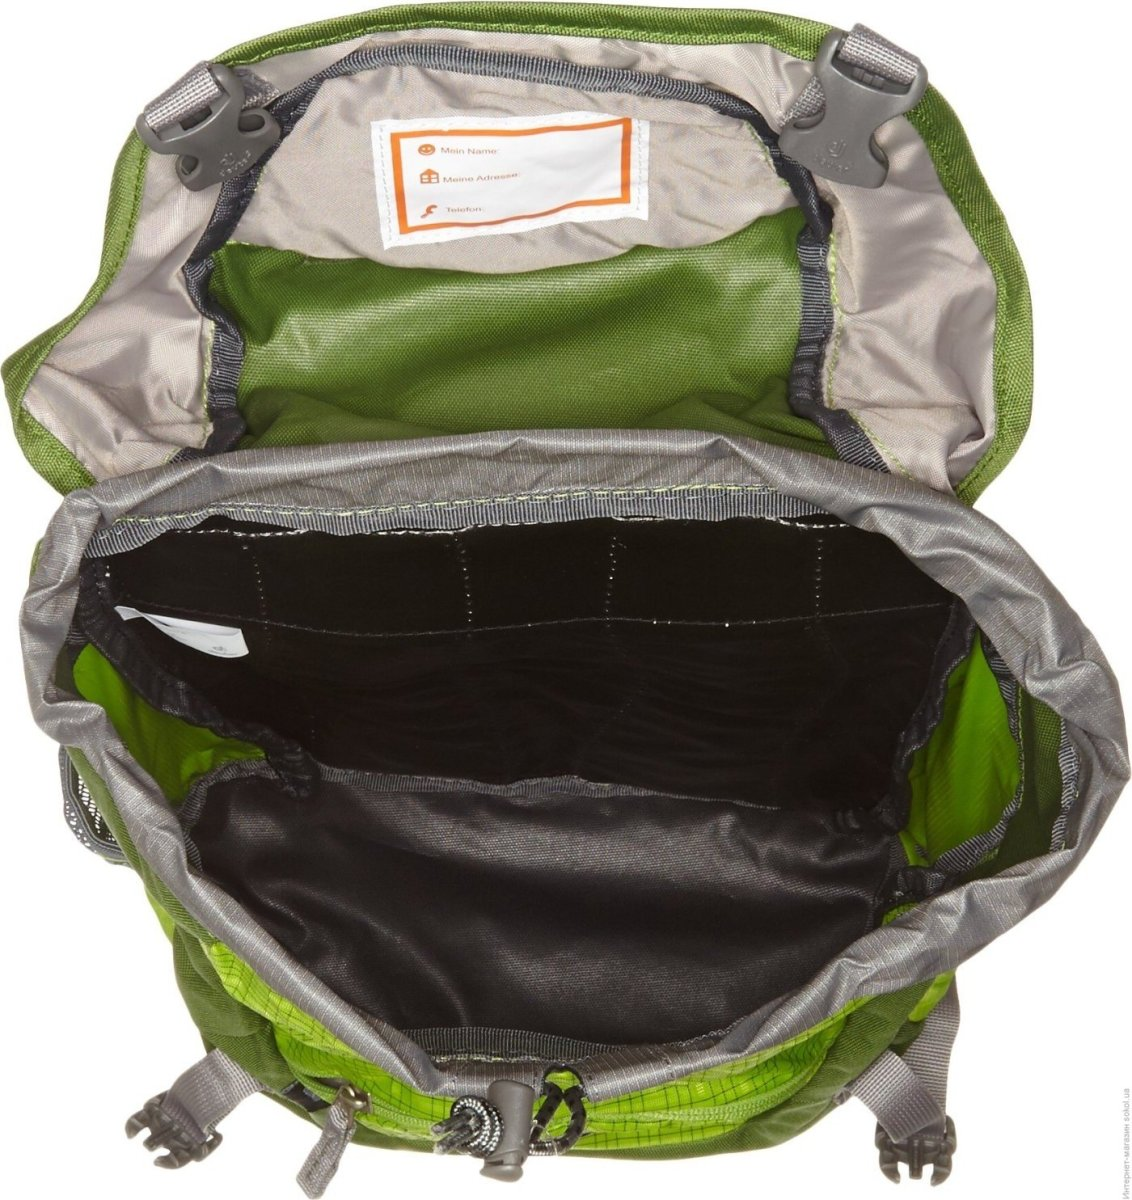 Рюкзак Deuter Junior цвет 1308 bay-navy Junior 5 3612519 1308